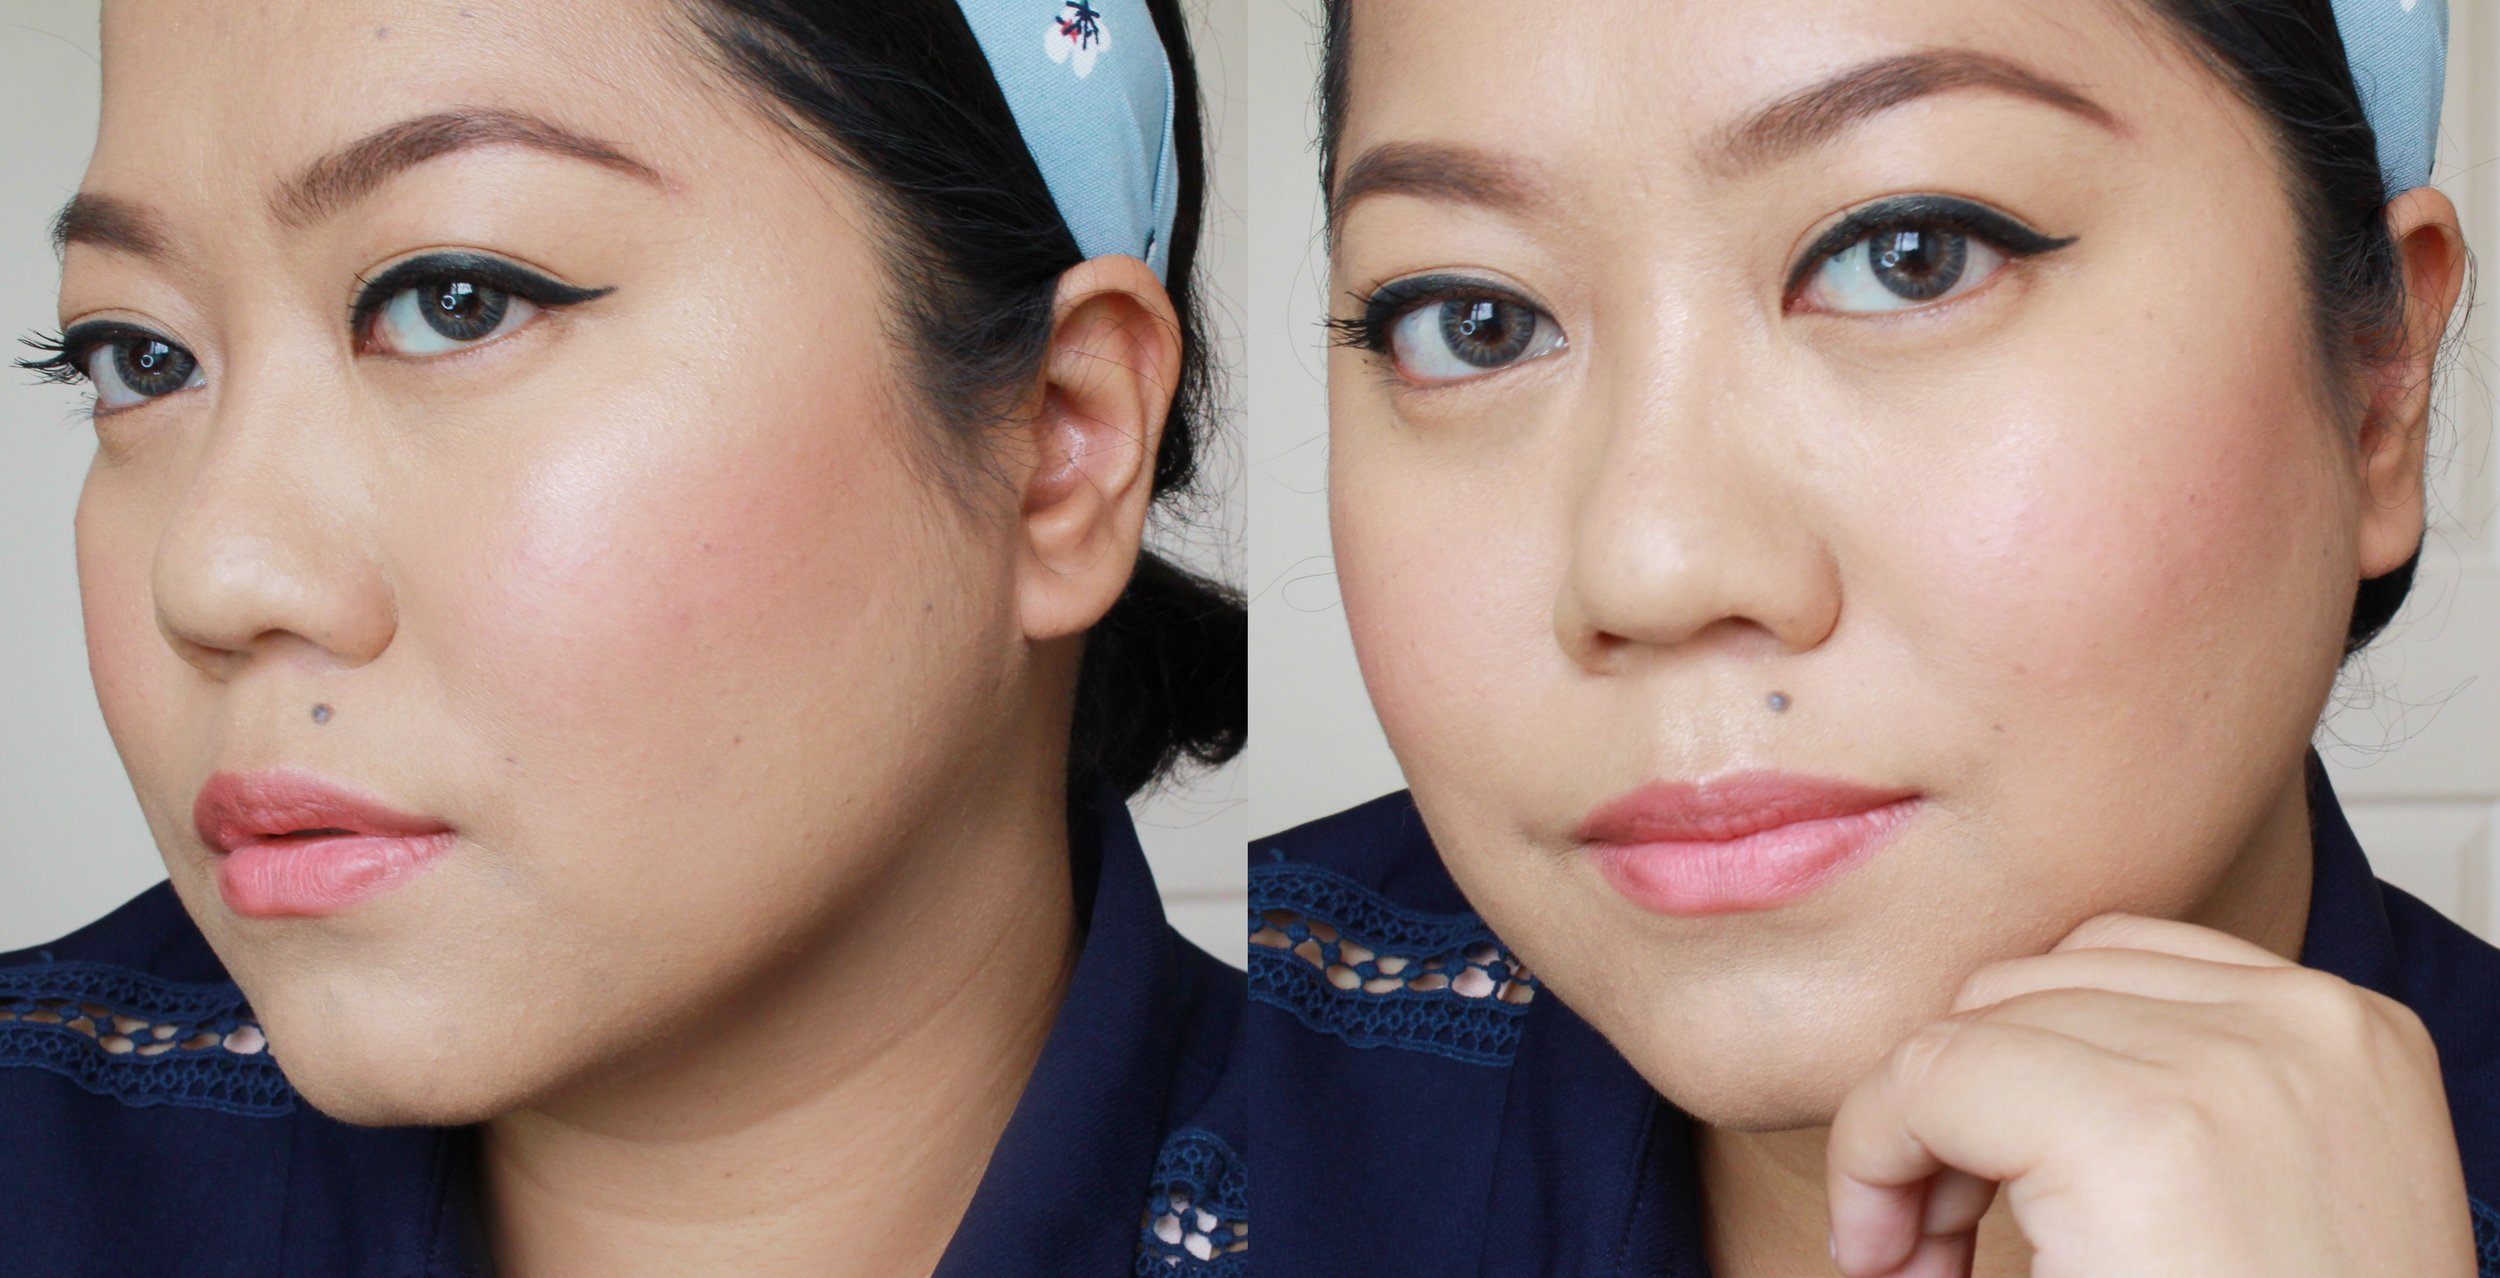 Using the   Inglot AMC Face Blush  in 93 and  Face and Body Illuminator in 69